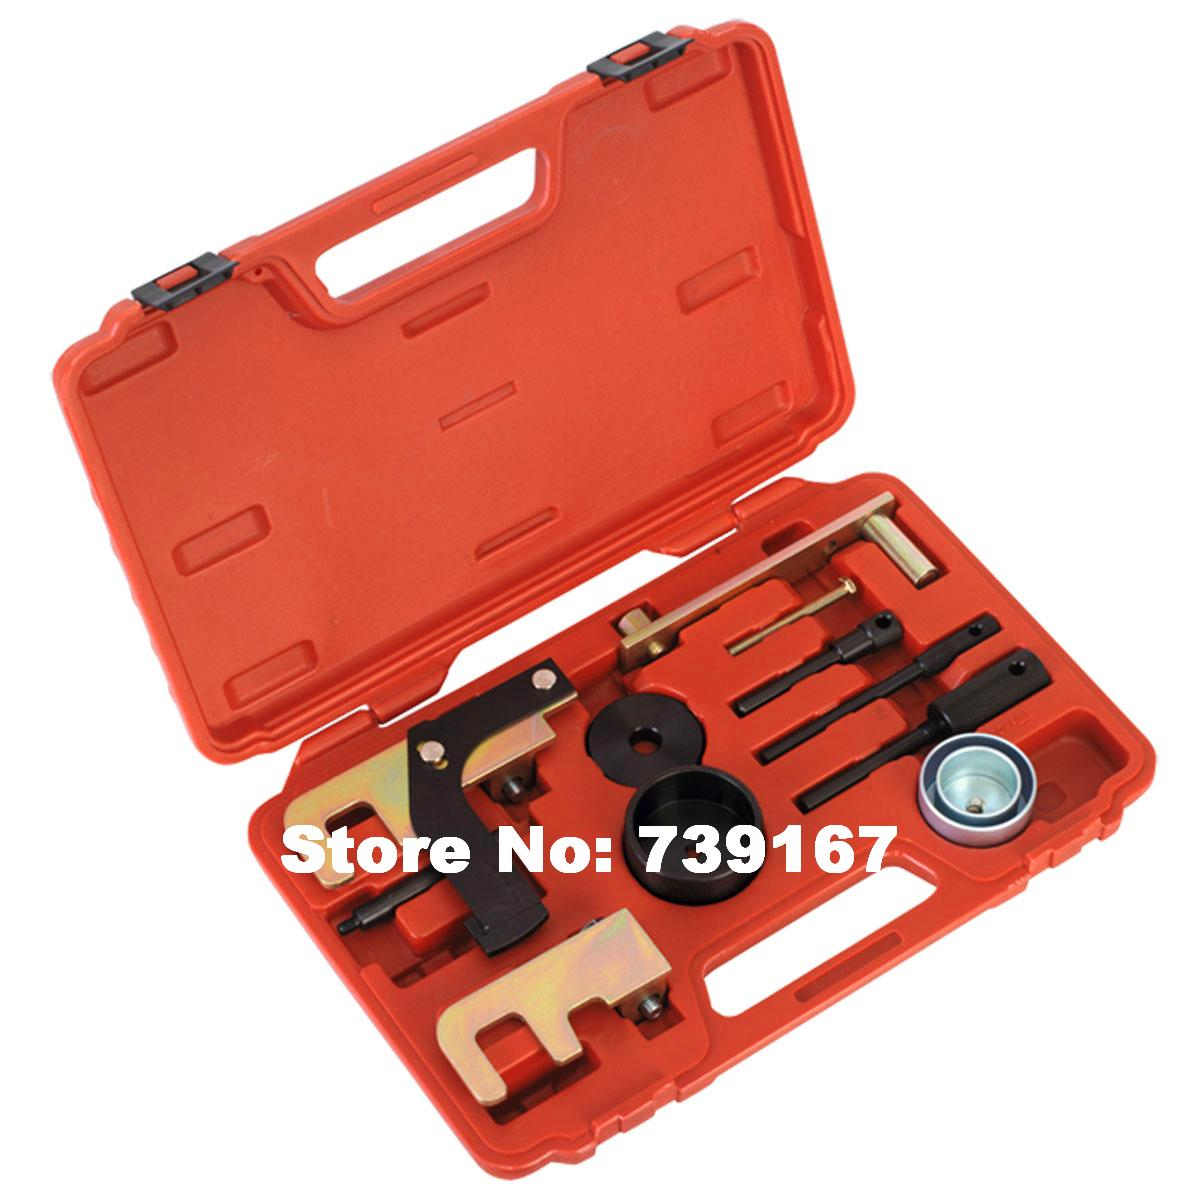 Diesel Engine Camshaft Crankshaft Locking Belt Tensioner Alignment Timing Tool Kit For Renault Nissan Vauxhall Opel ST0066 engine timing tool kit for renault vauxhall petrol engines 1 4 1 6 1 8 2 0 16v belt driven